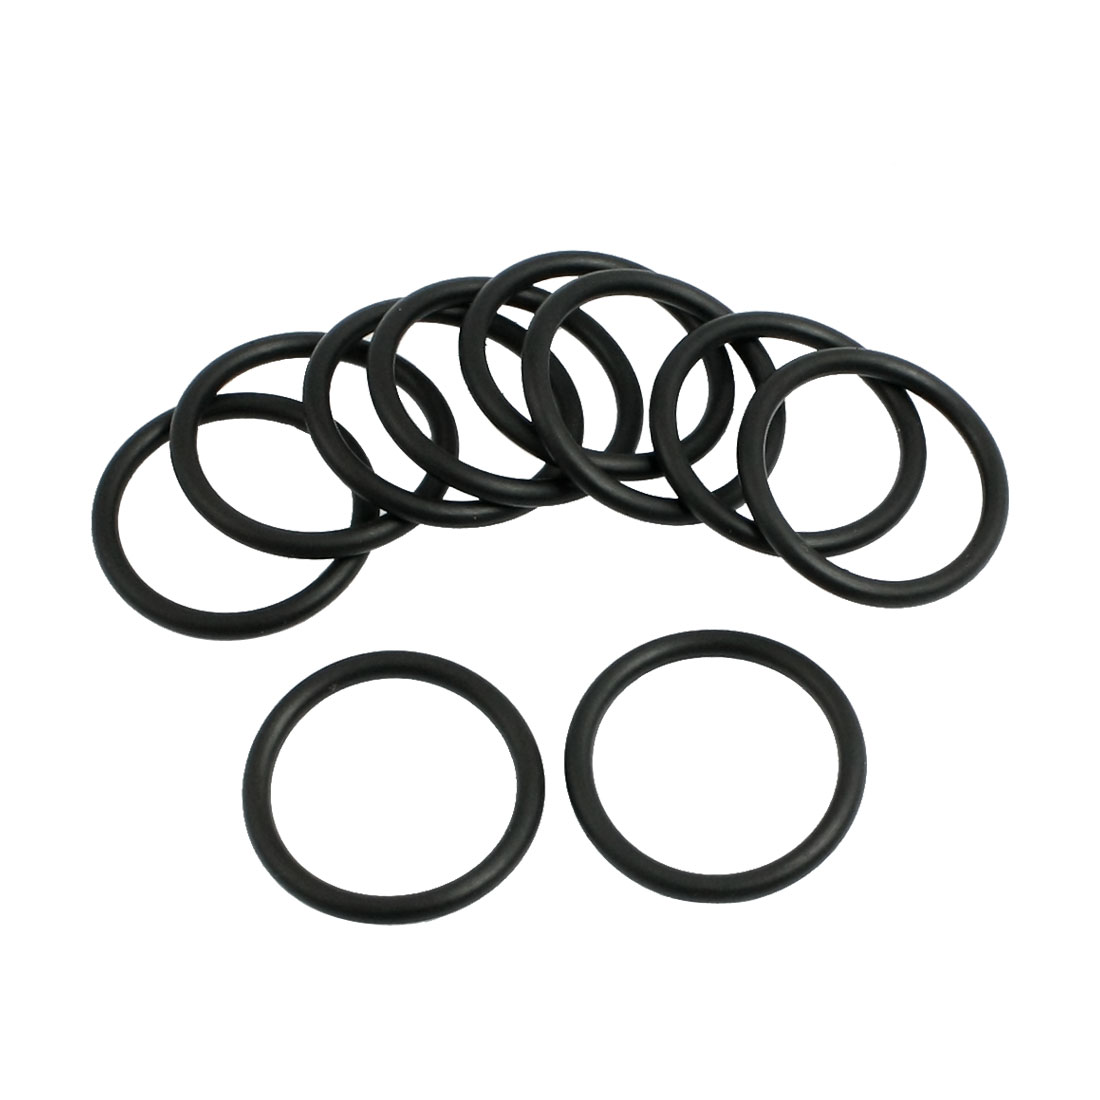 10 Pcs 22.4mm x 2.65mm Black Silicone O Rings Oil Seals Gaskets